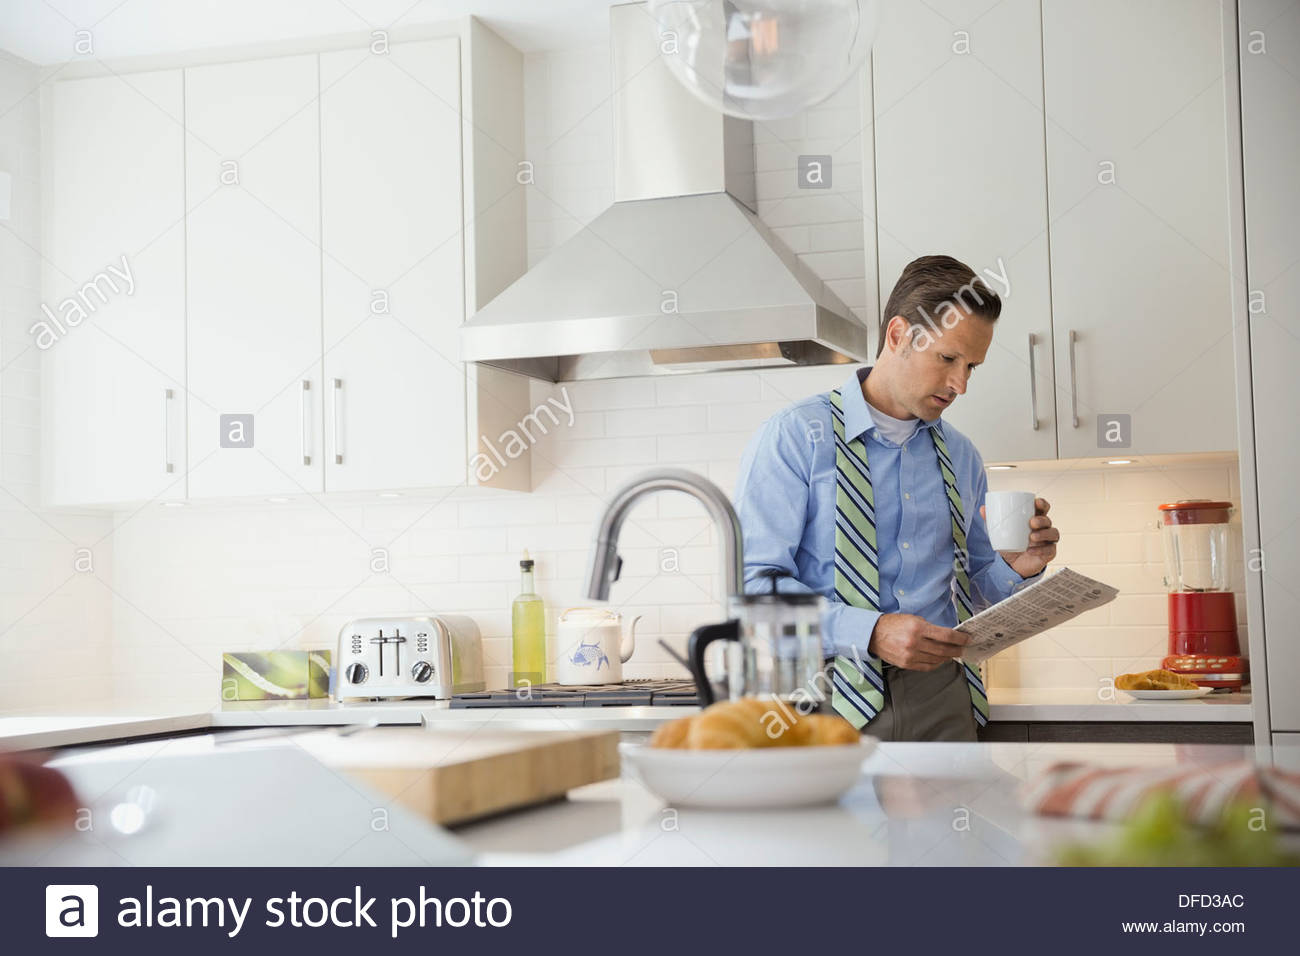 Businessman reading newspaper in domestic kitchen - Stock Image